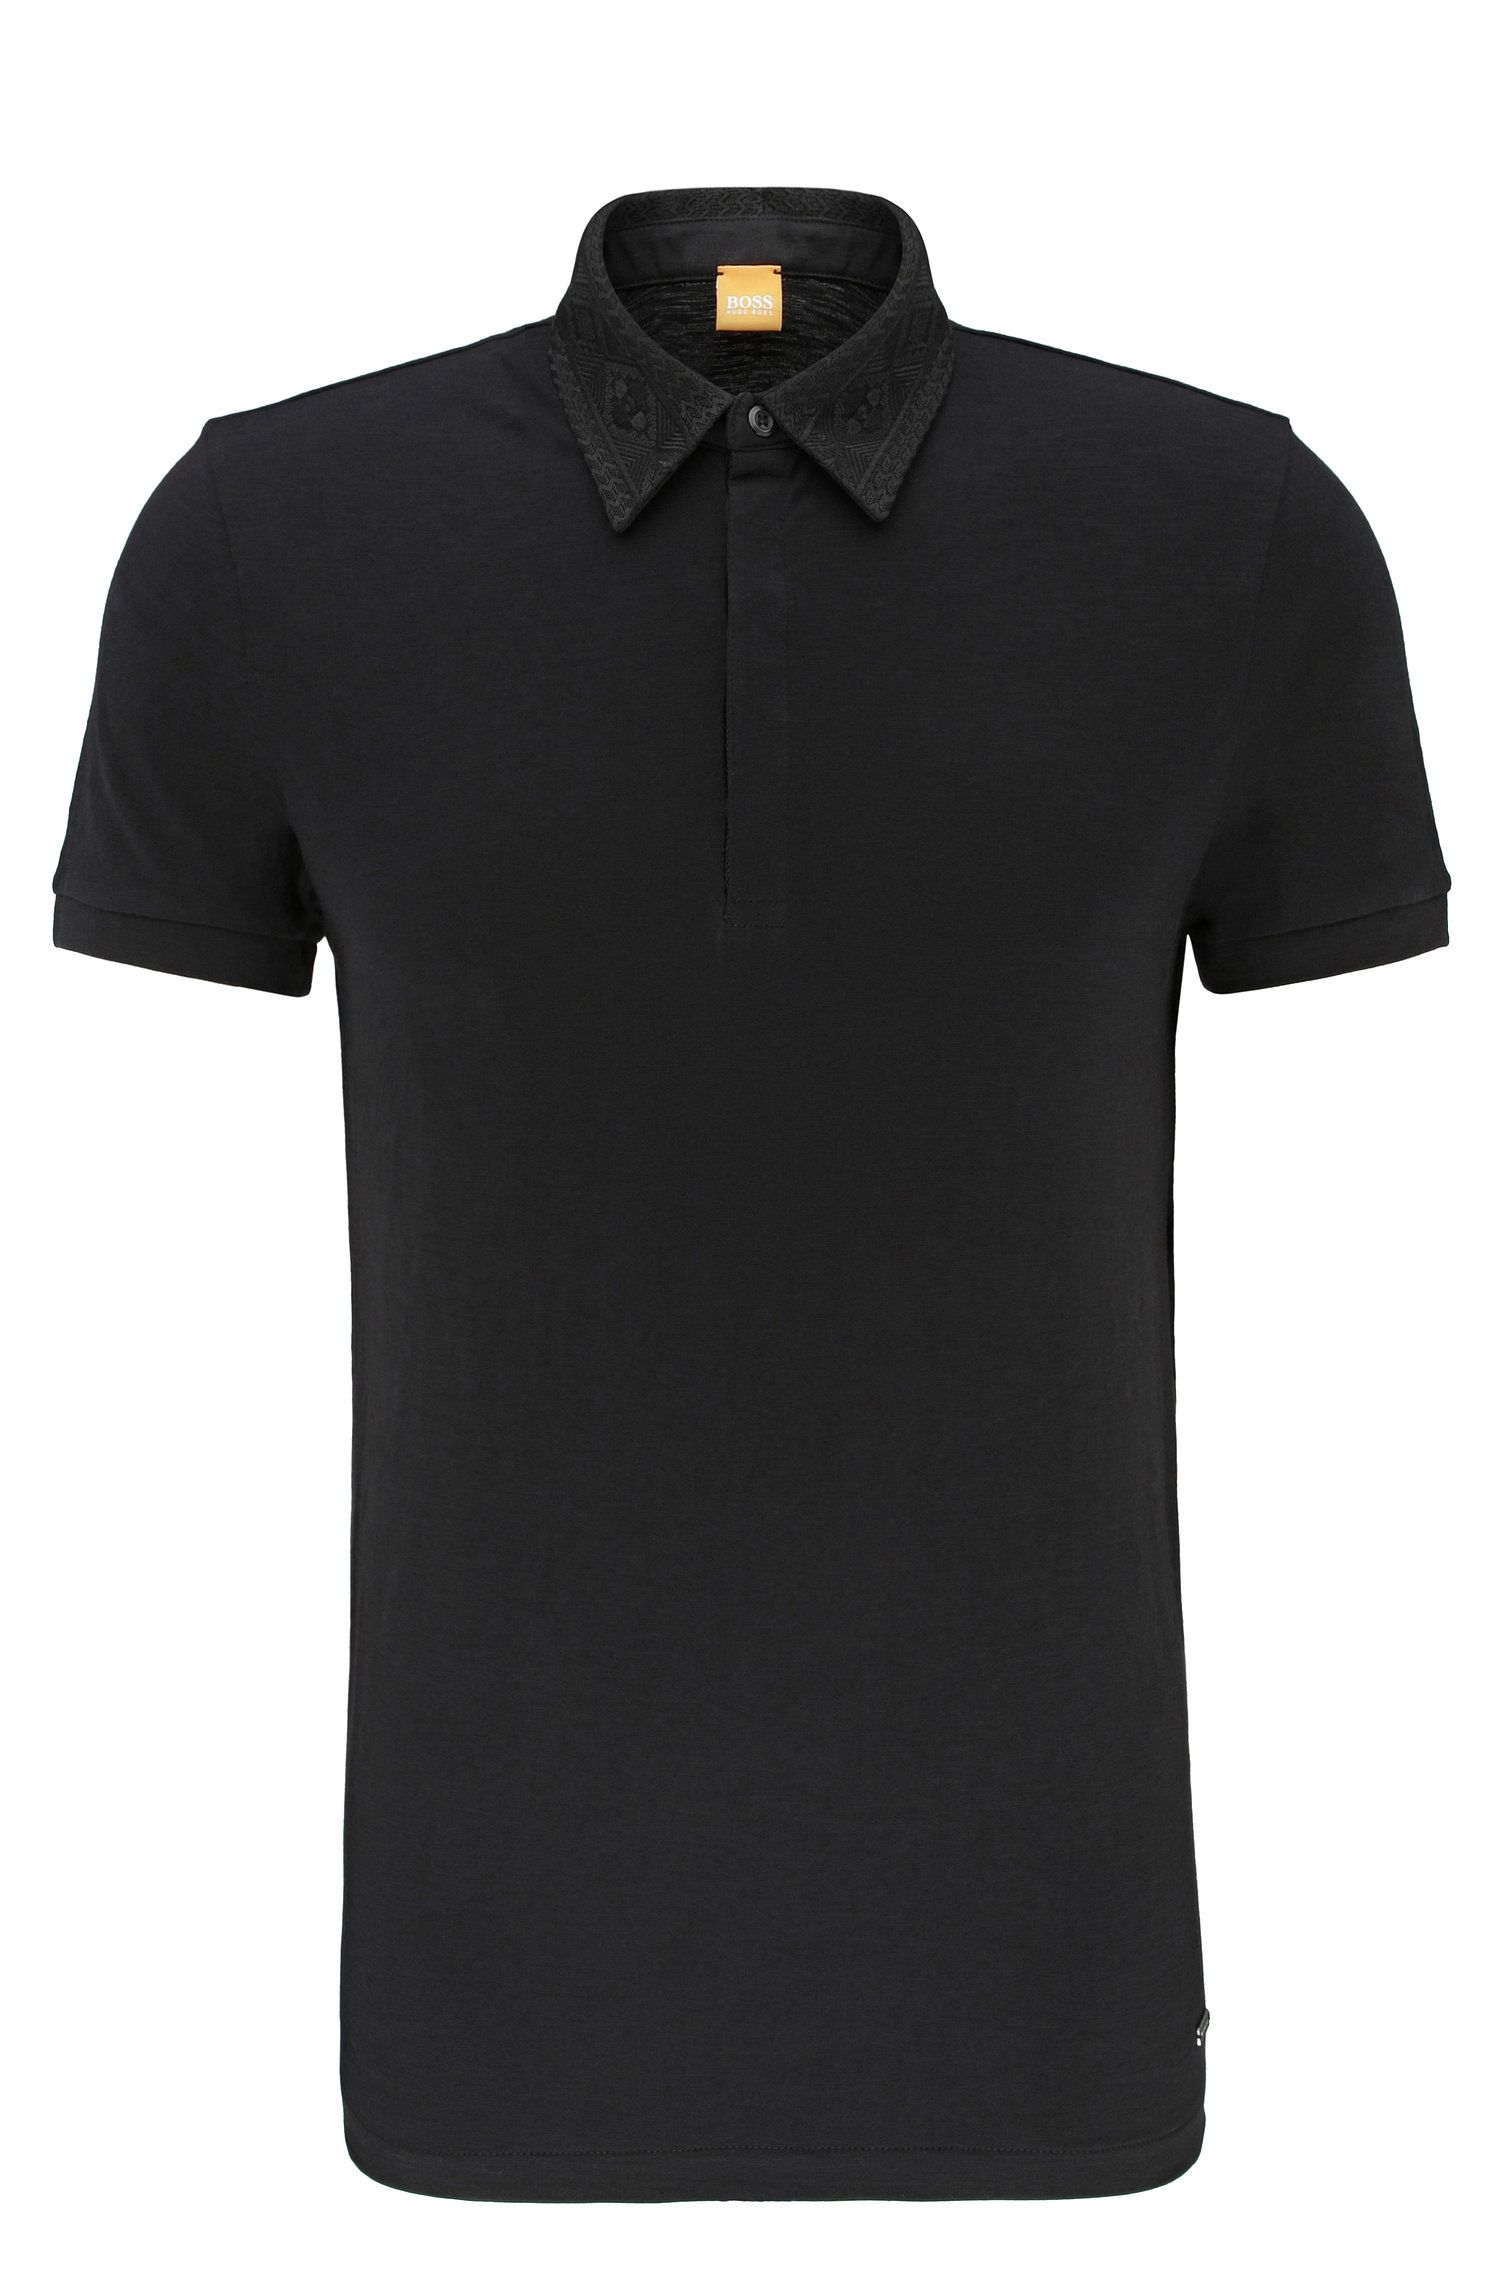 Cotton Embroidered Collar Polo Shirt, Relaxed Fit | Poesy